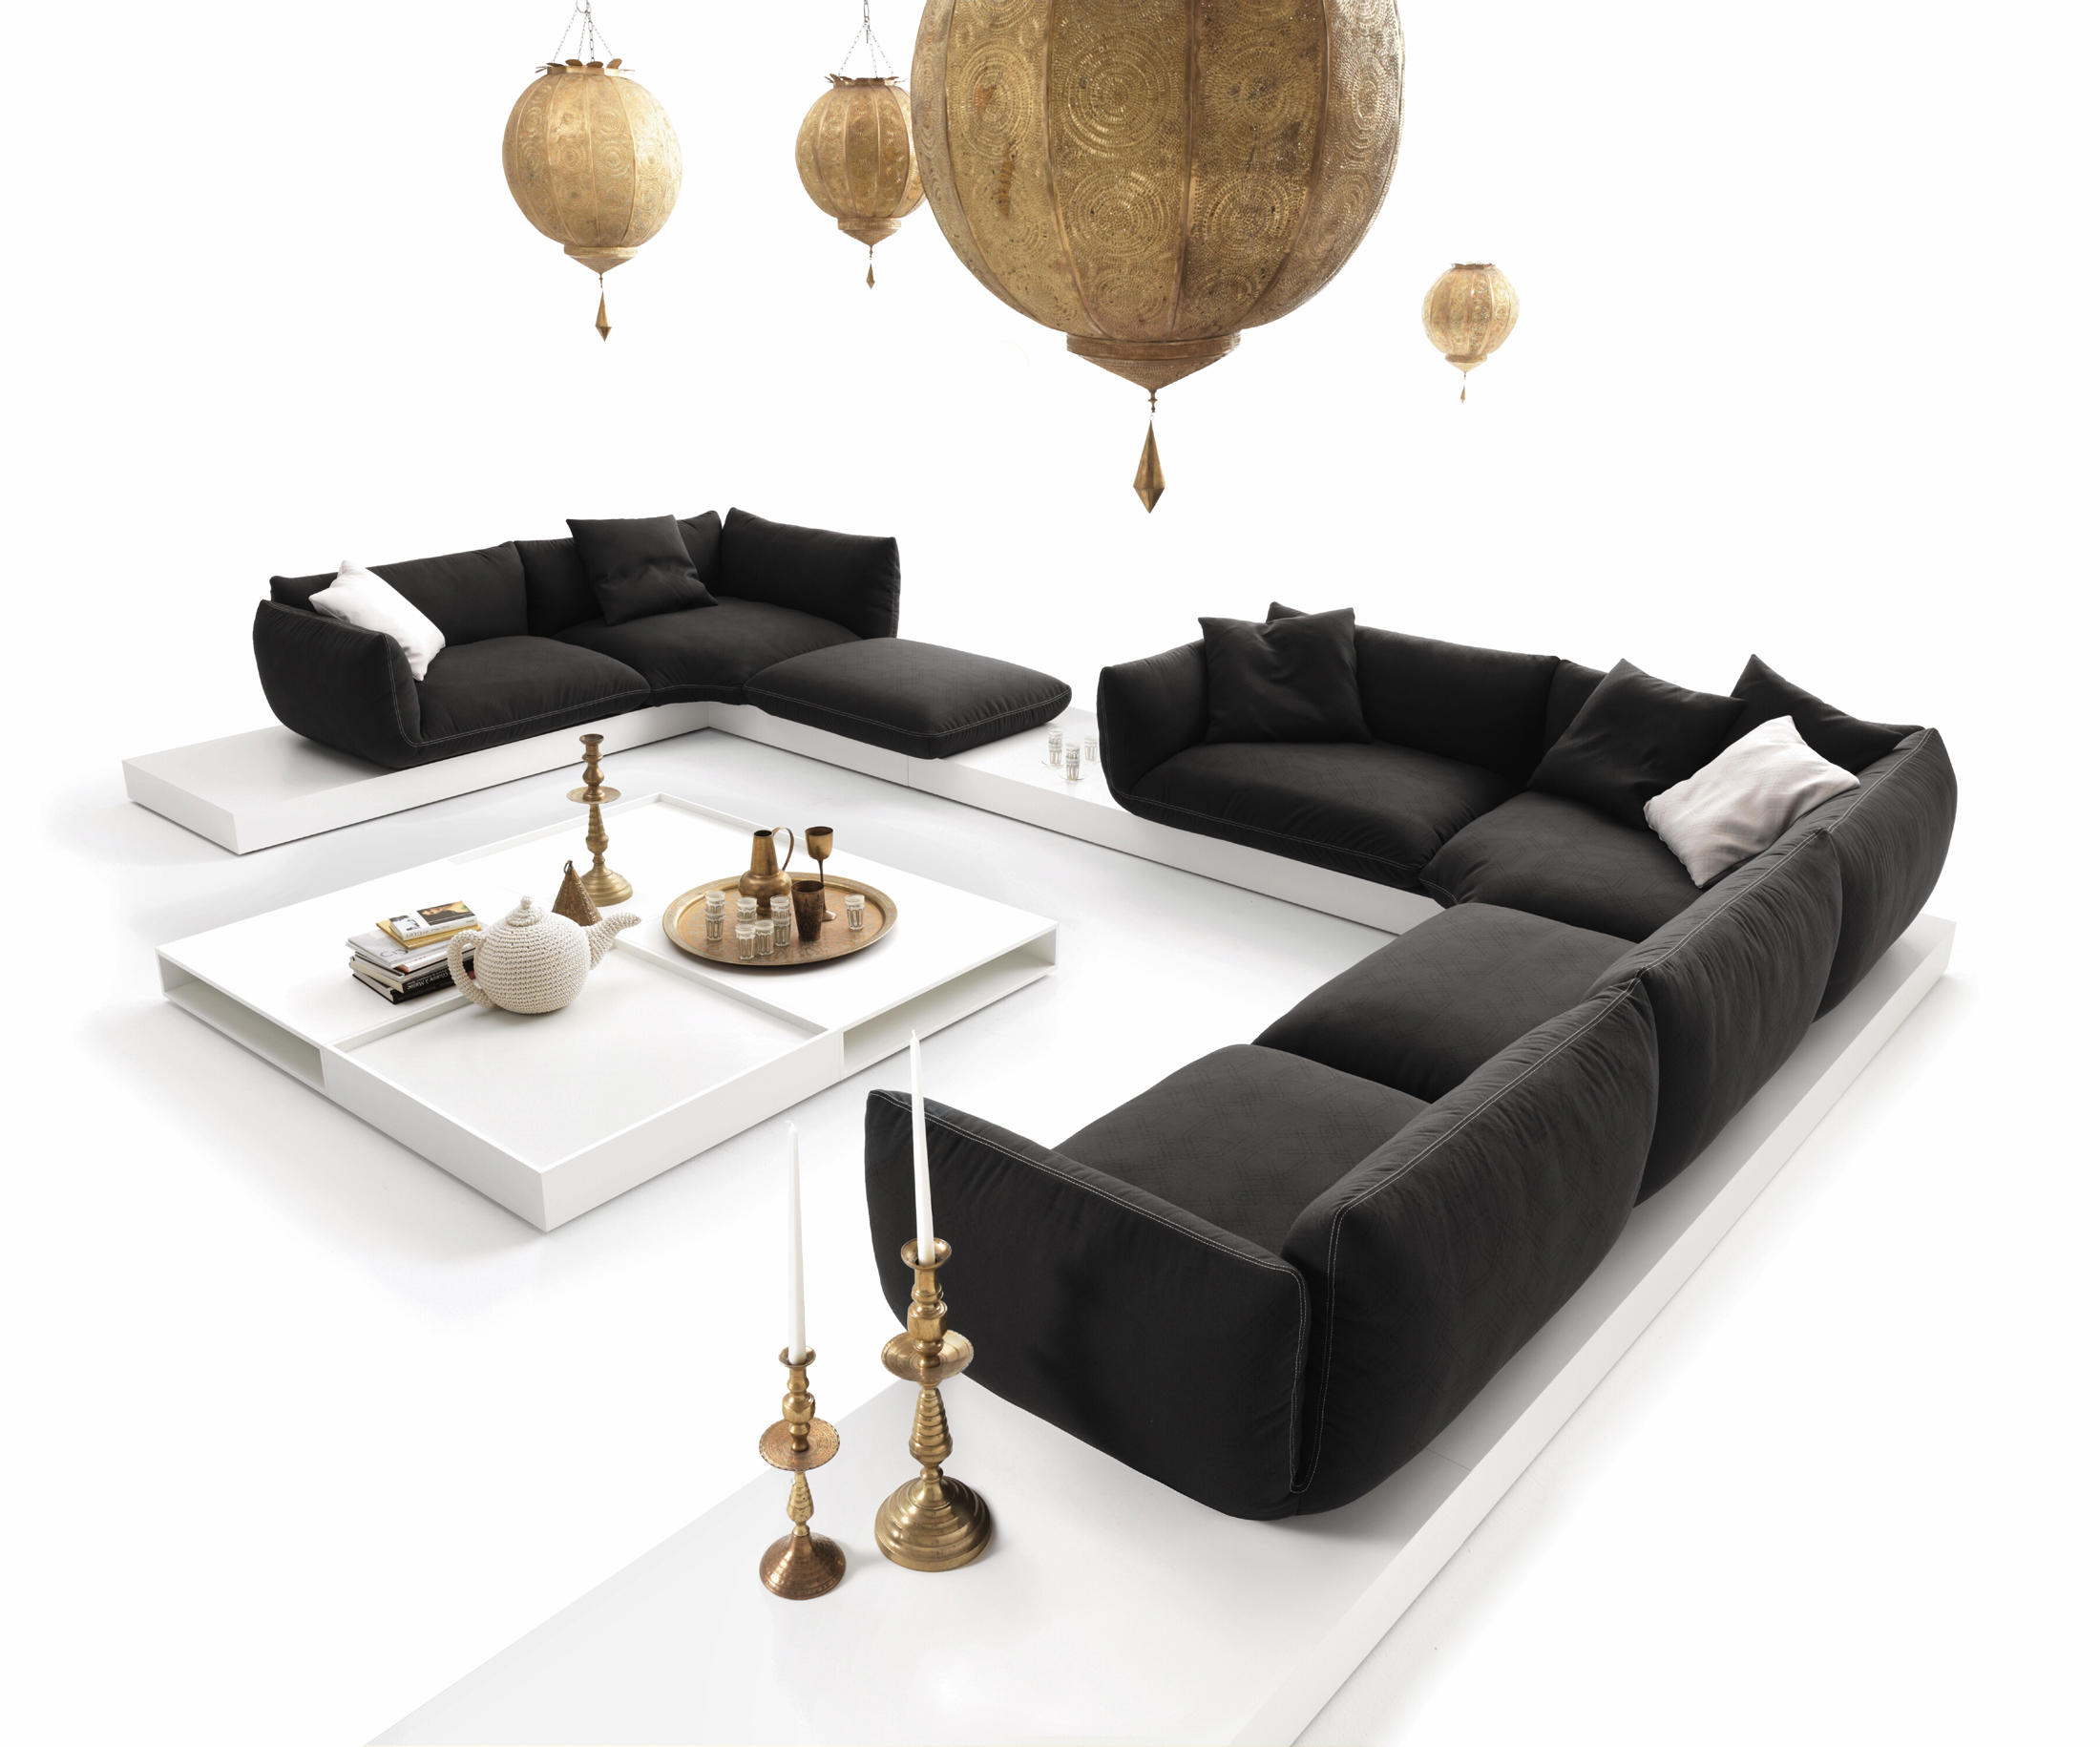 jalis sofas by cor architonic. Black Bedroom Furniture Sets. Home Design Ideas